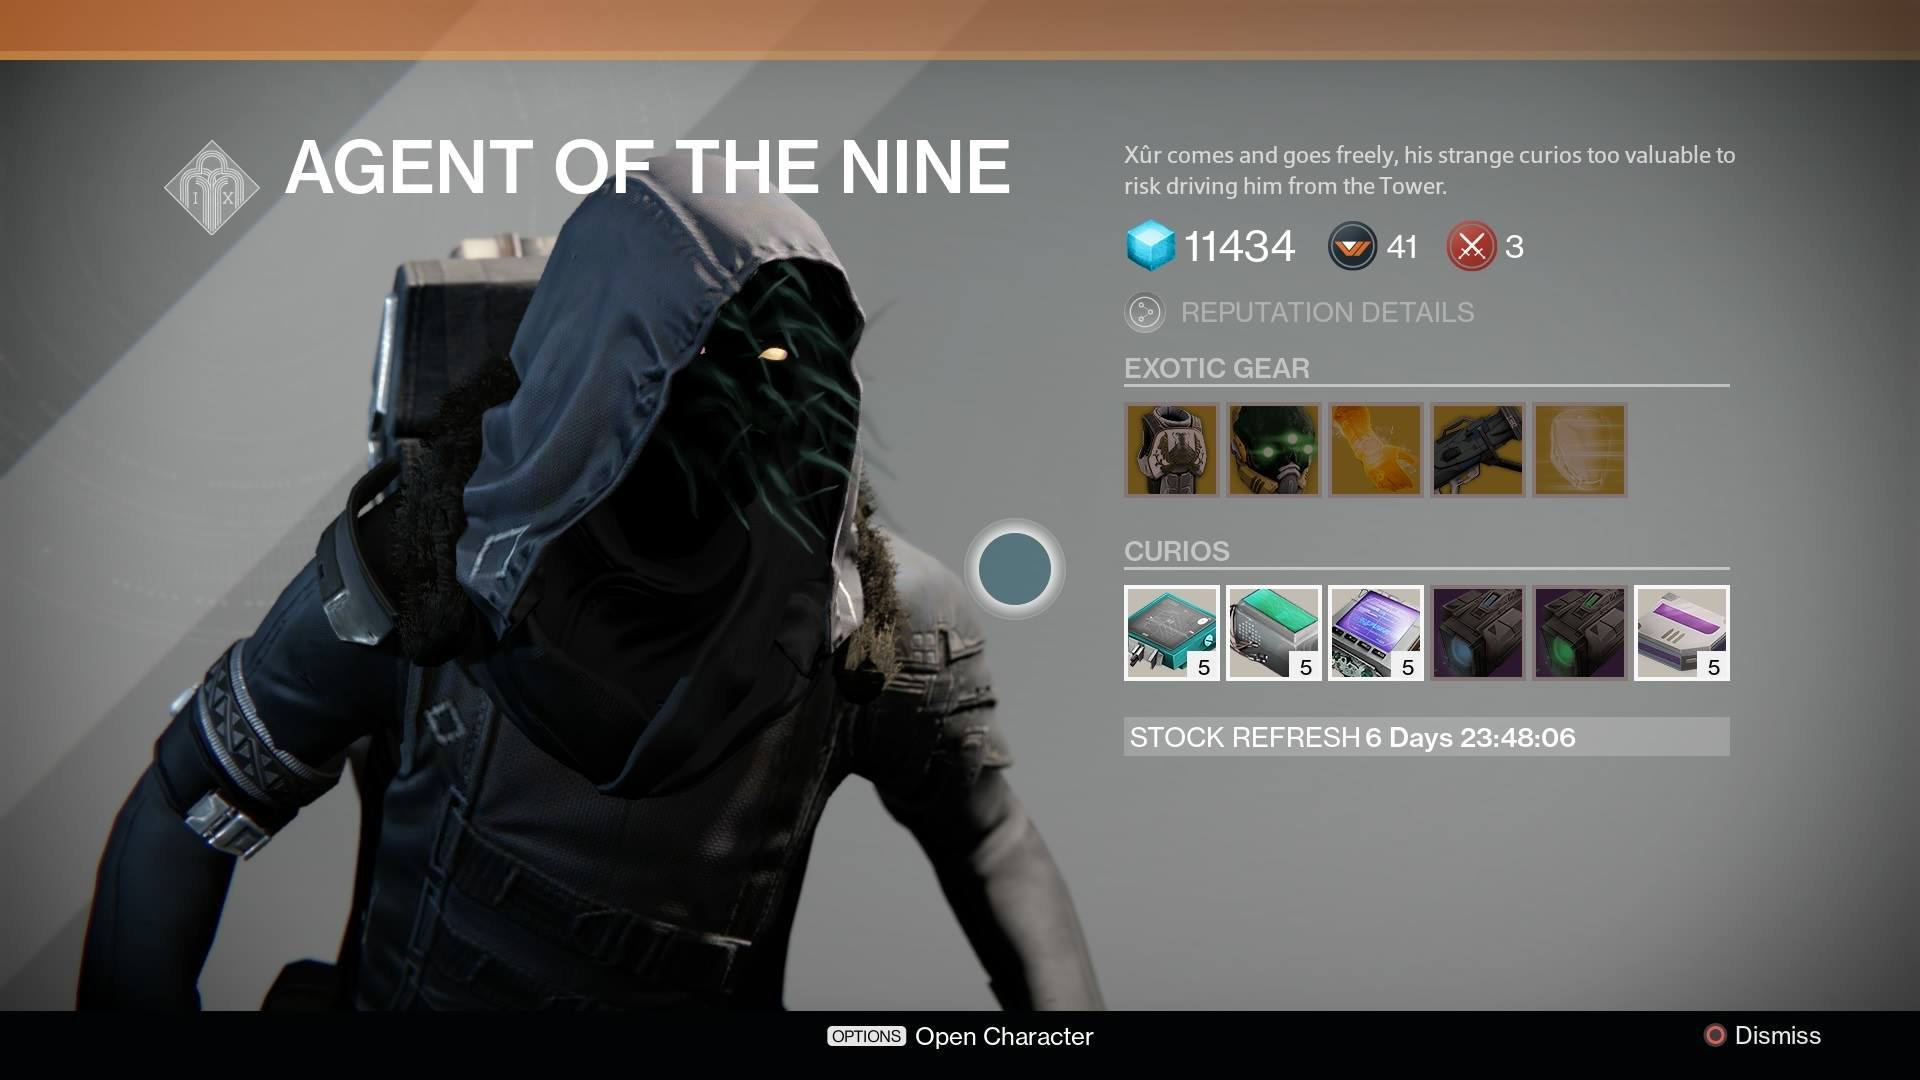 Destiny xur location and inventory for november 7 8 vg247